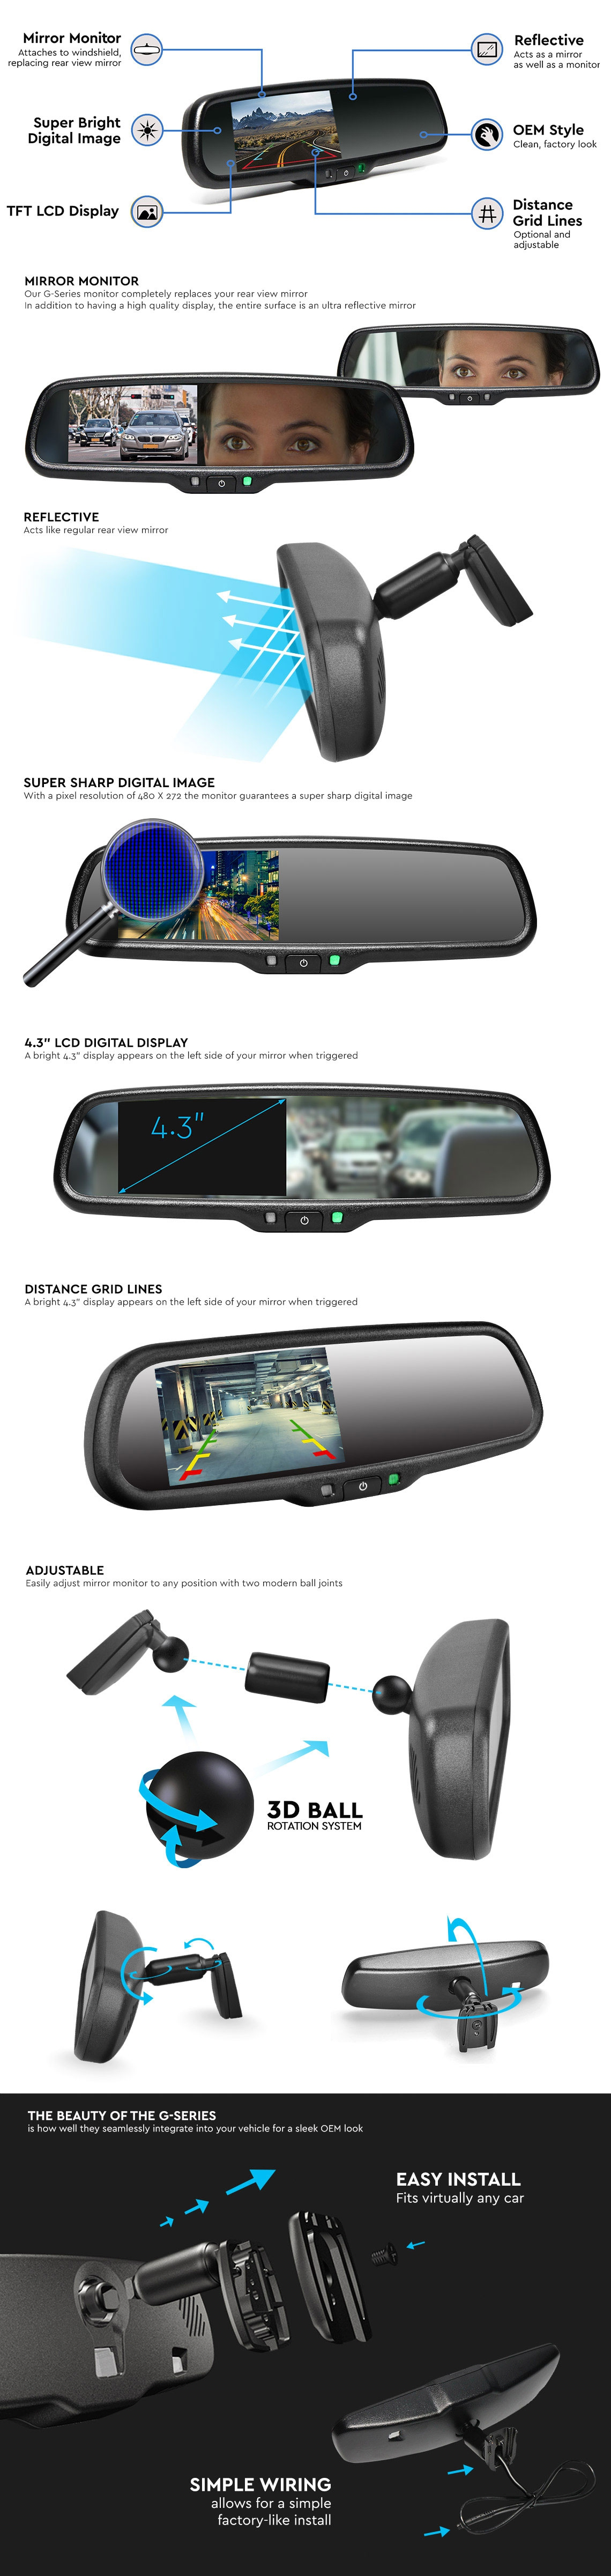 RVS-718 G-Series Rear View Replacement Mirror Monitor